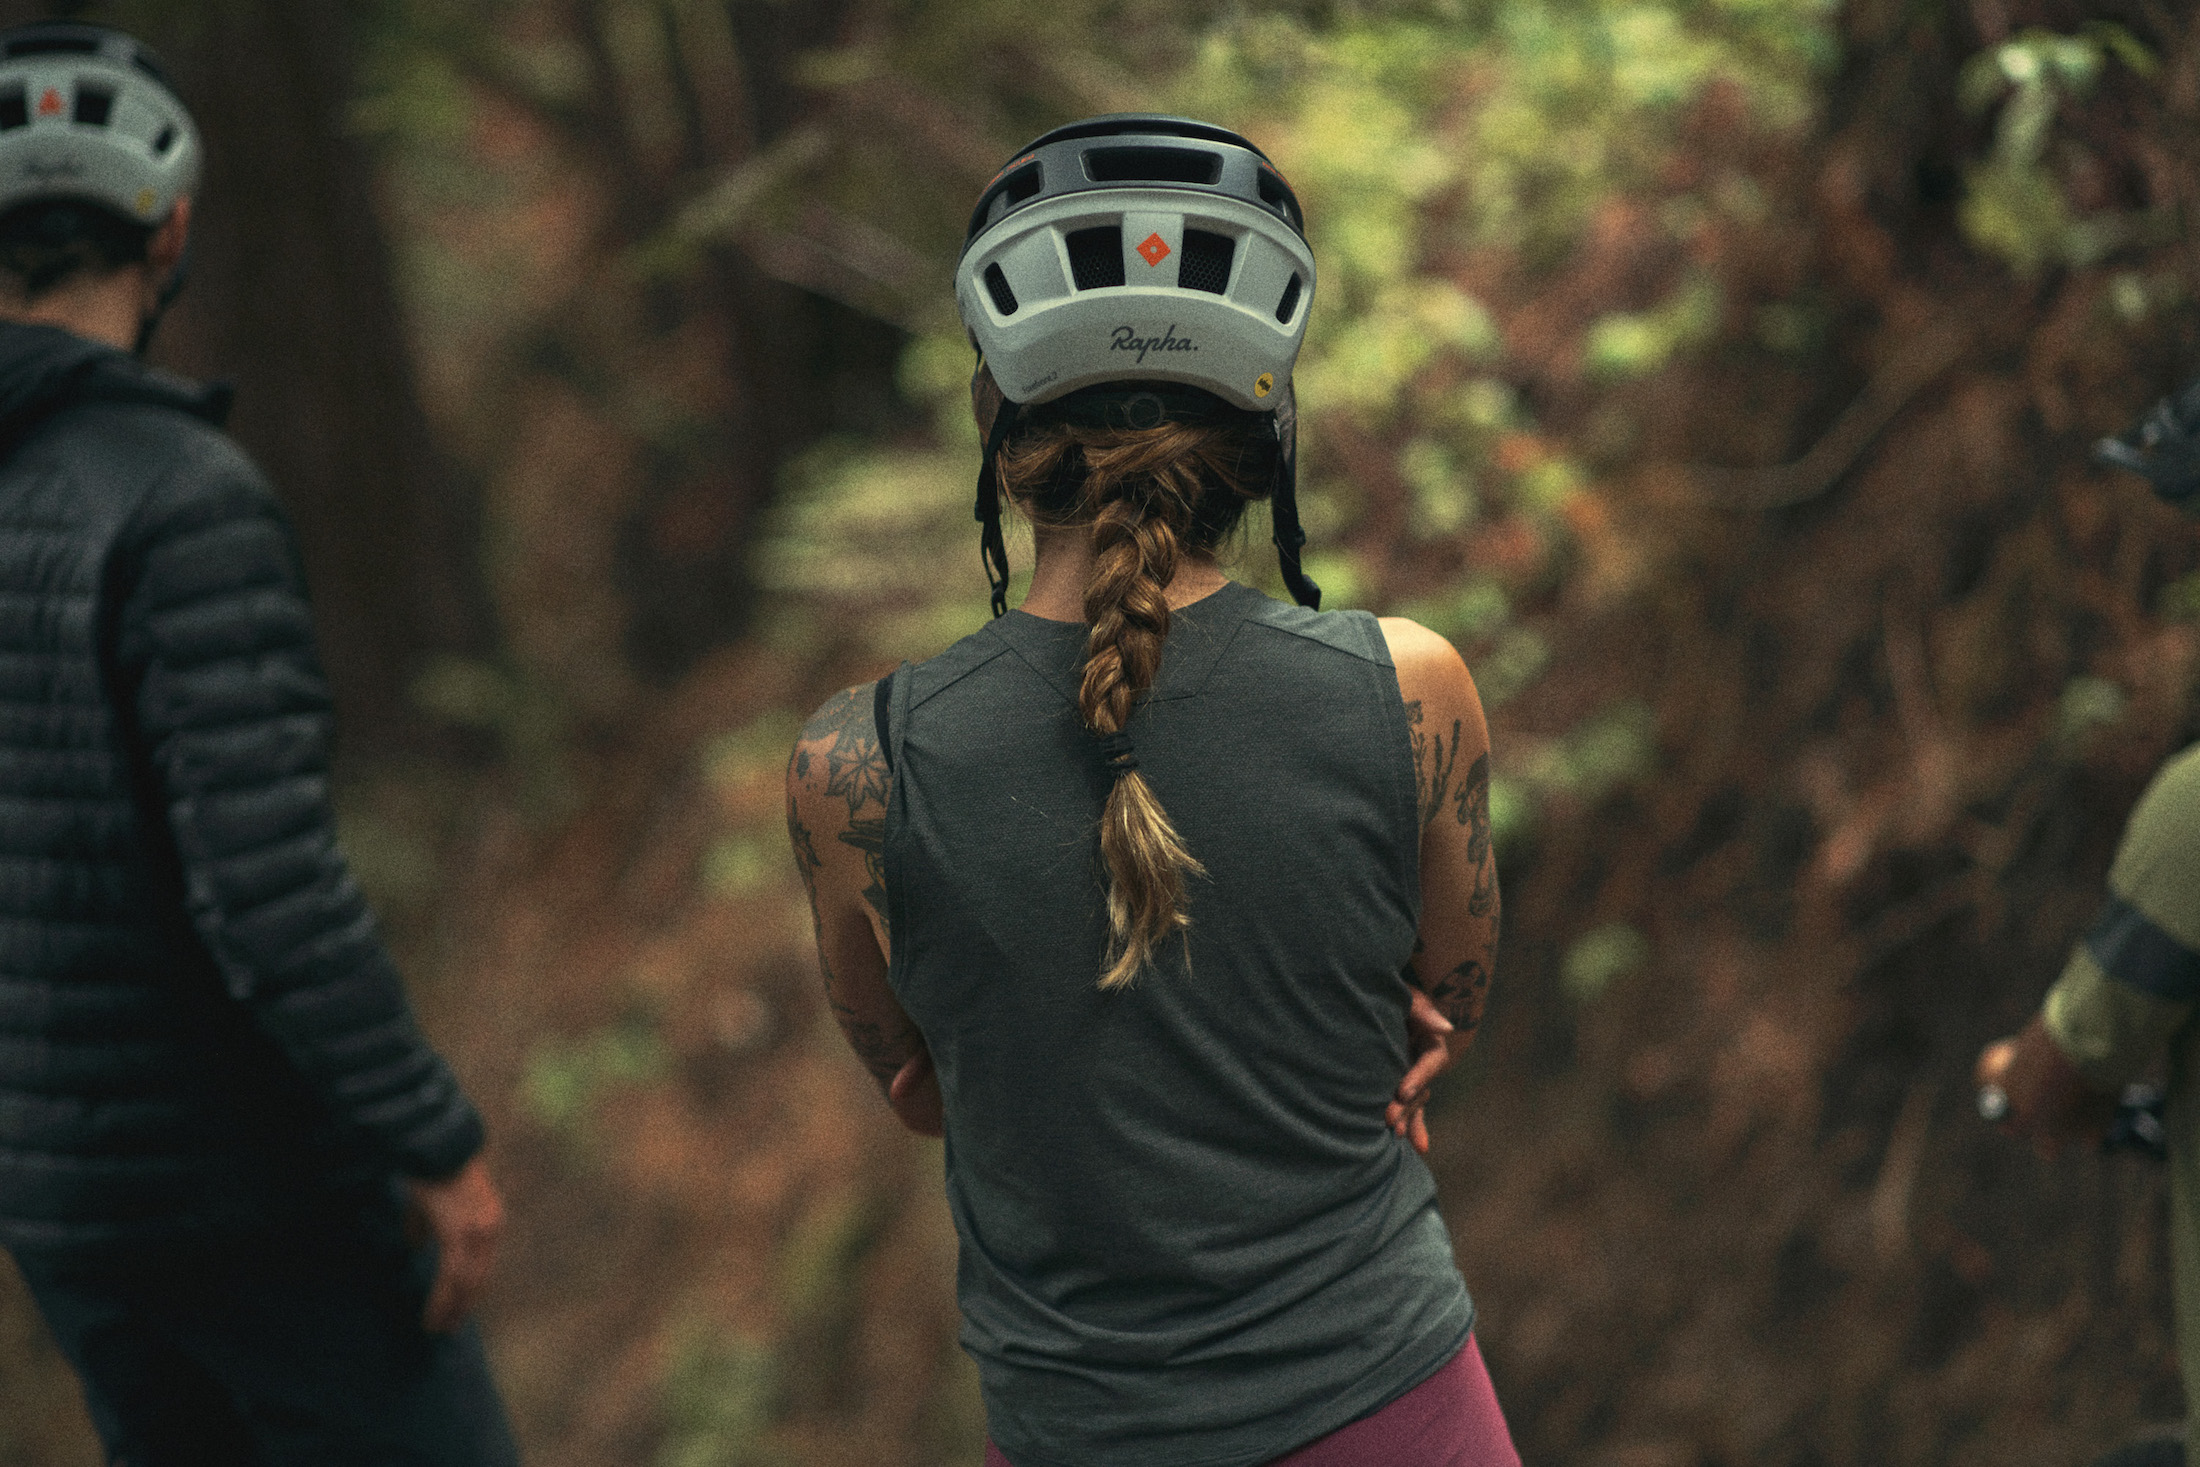 female mountain biker in a tank and helmet with her back turned to the camera